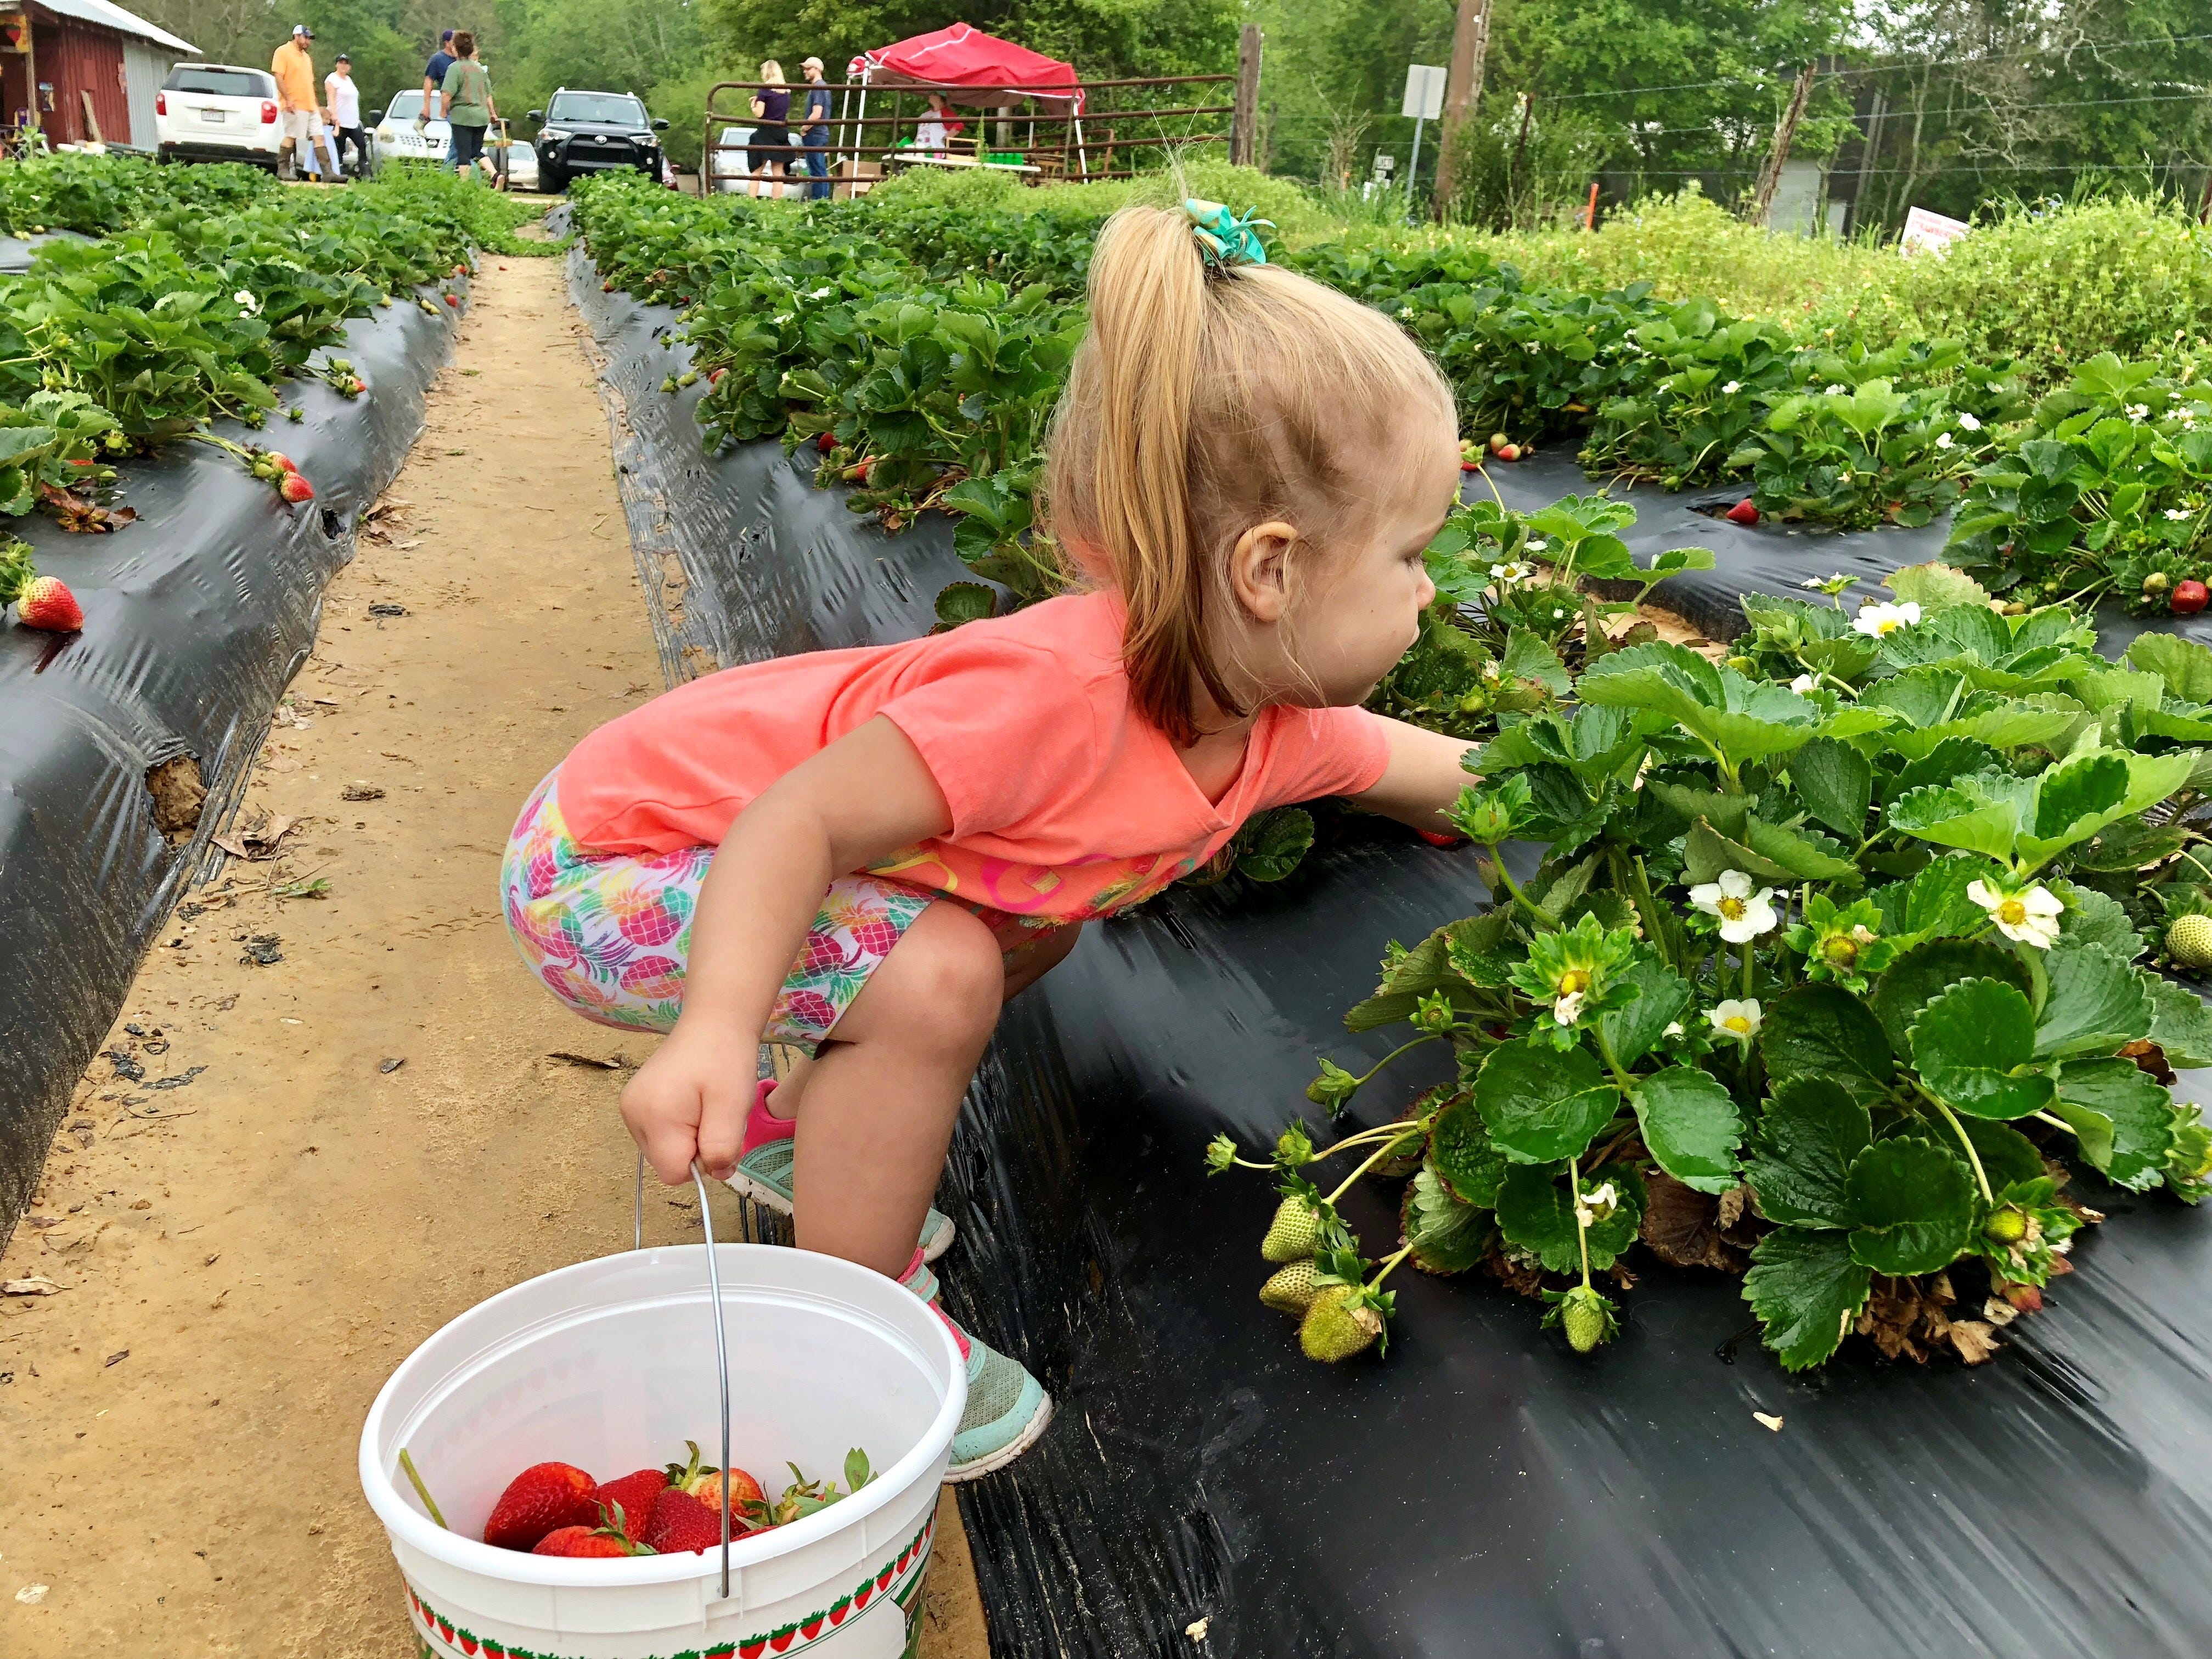 Marie Guidry, 2, picks strawberries with family April 6 at Mrs. Heather's Strawberry Farm in Albany, Louisiana.